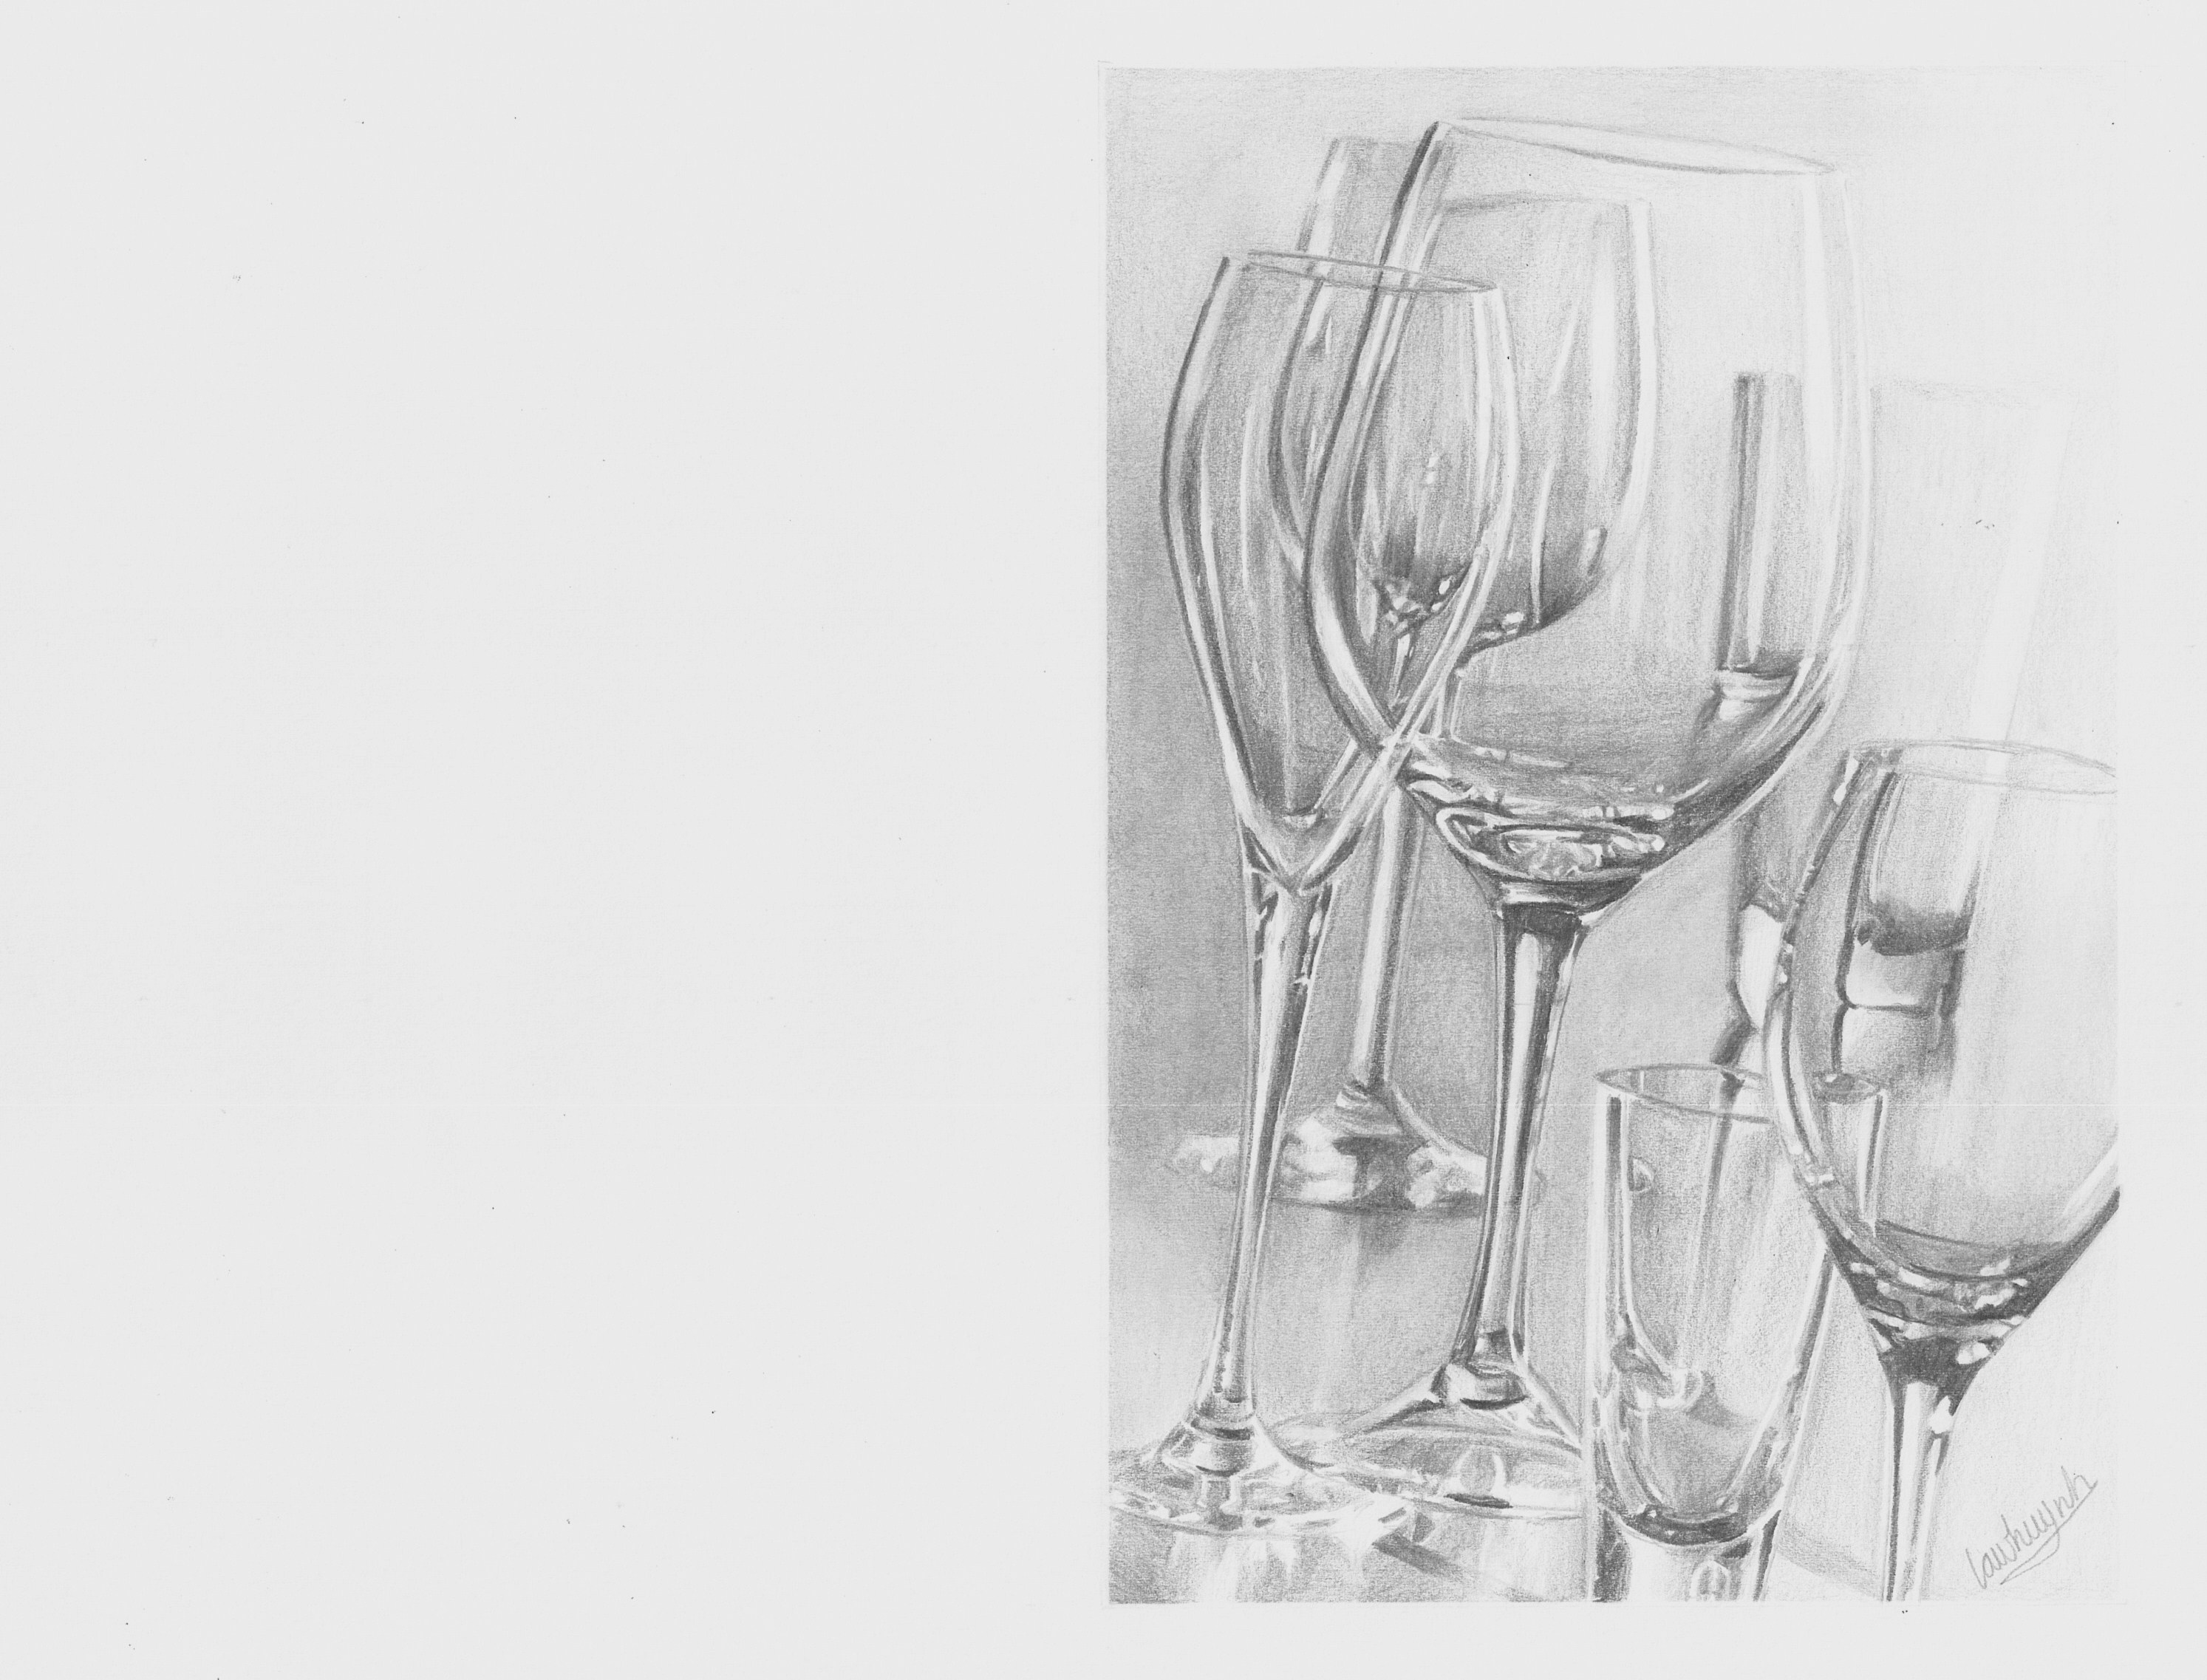 Glass of Wine Drawing images